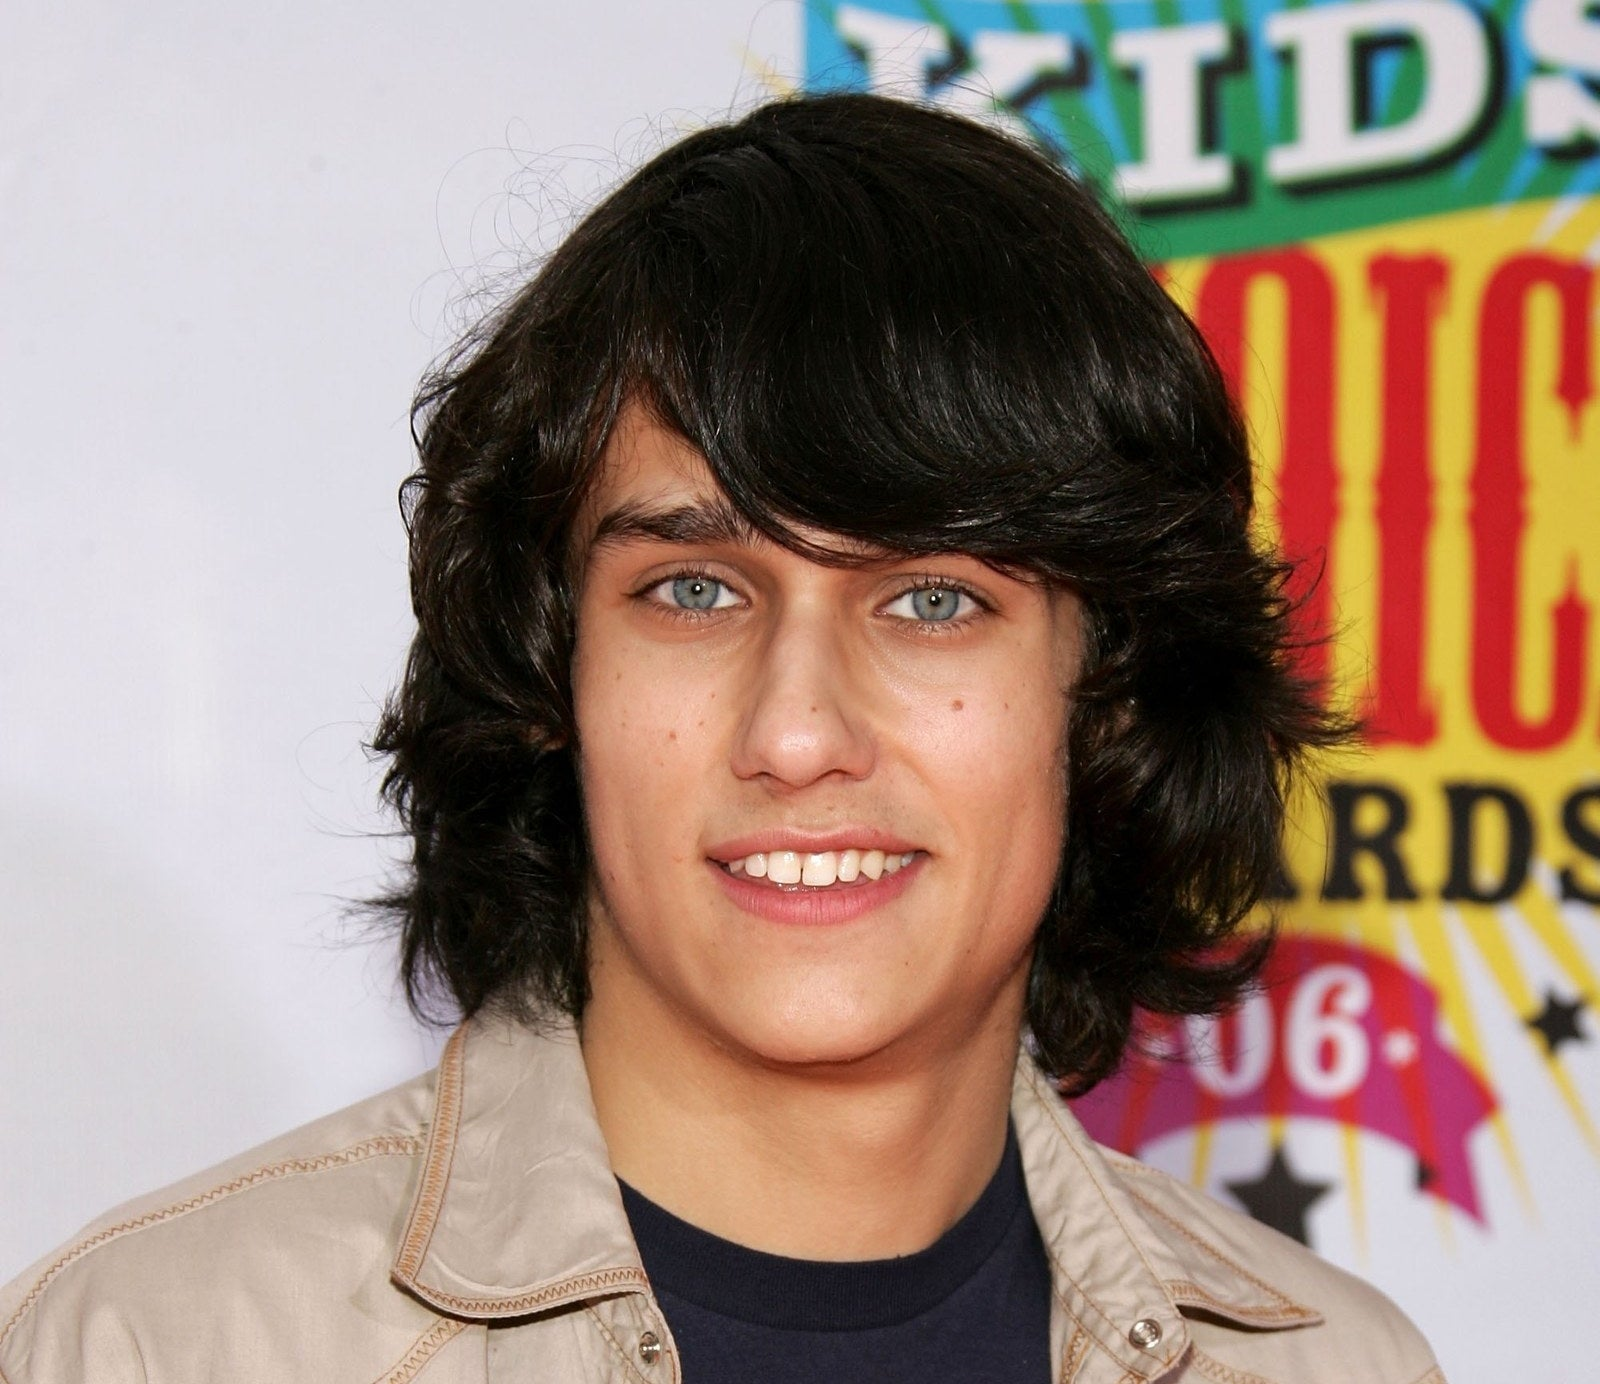 If you grew up in the early '00s, then there's a strong chance you had a crush on Teddy Geiger.